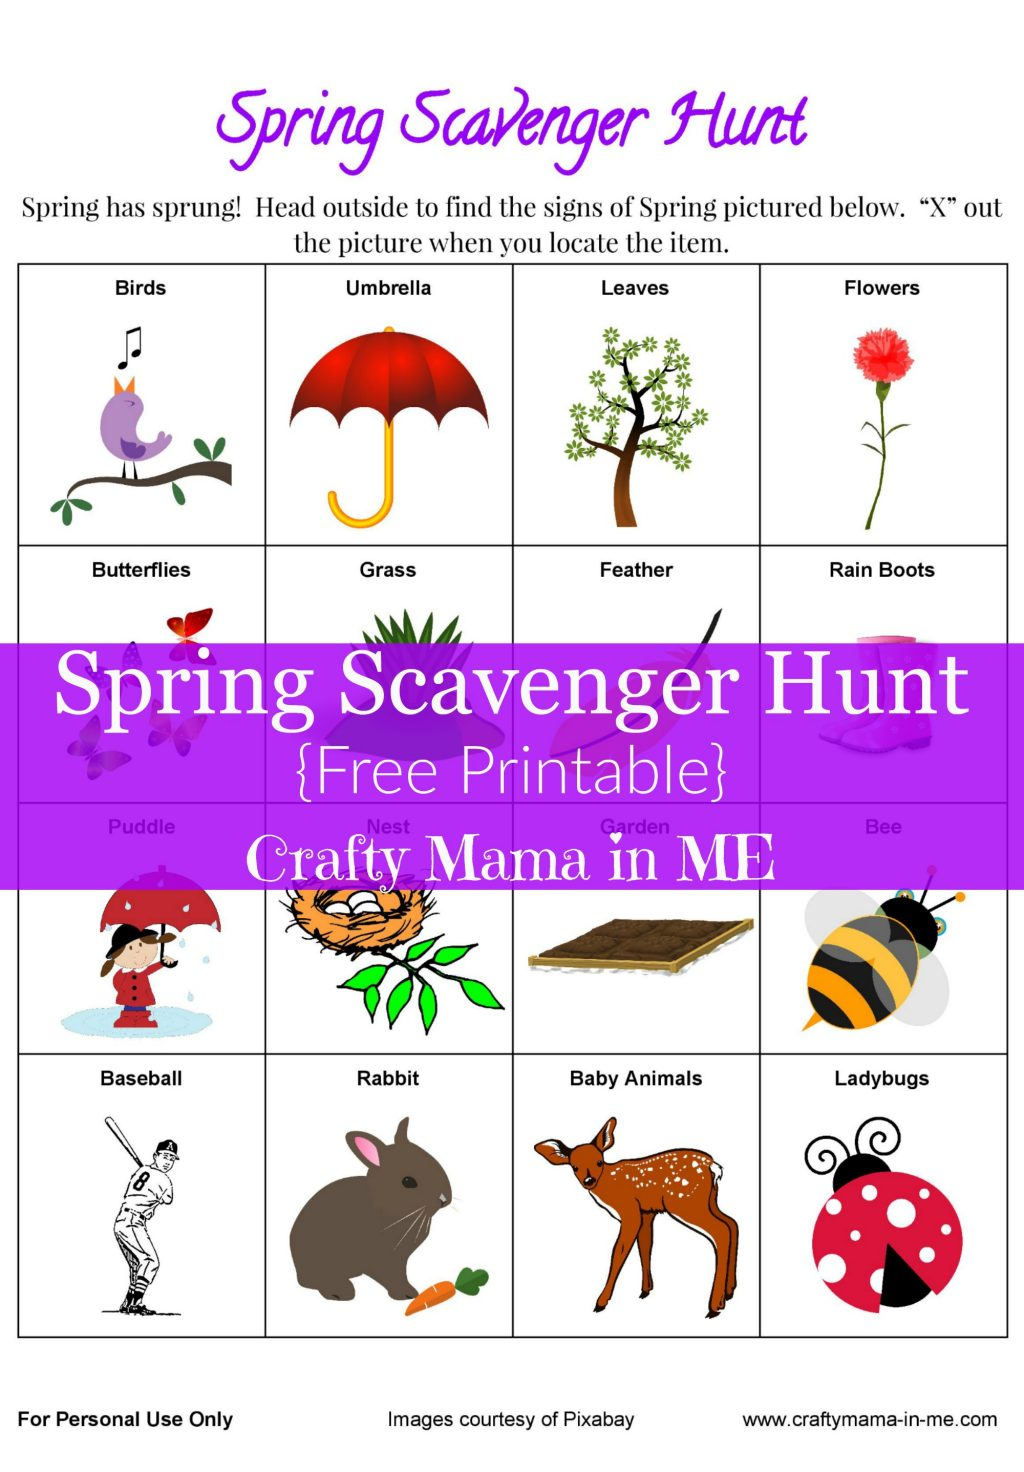 Get Outside with a Spring Scavenger Hunt {Free Printable}